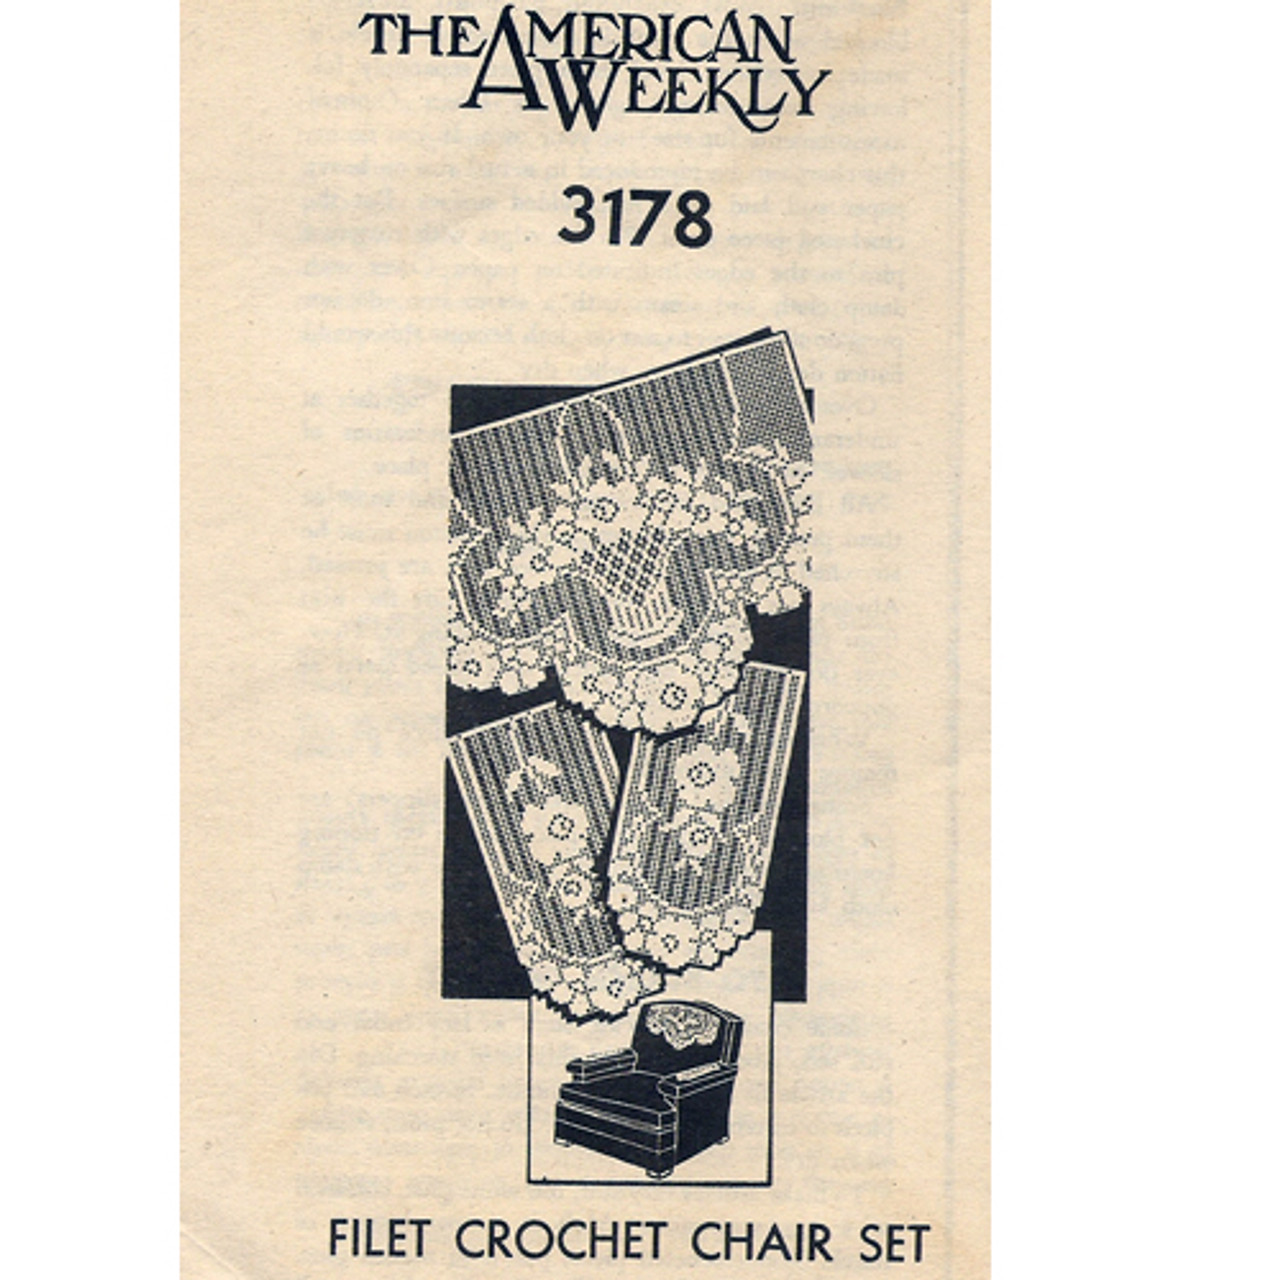 Filet Crochet Flower Basket Chair Set Pattern Mail Order American Weekly 3178